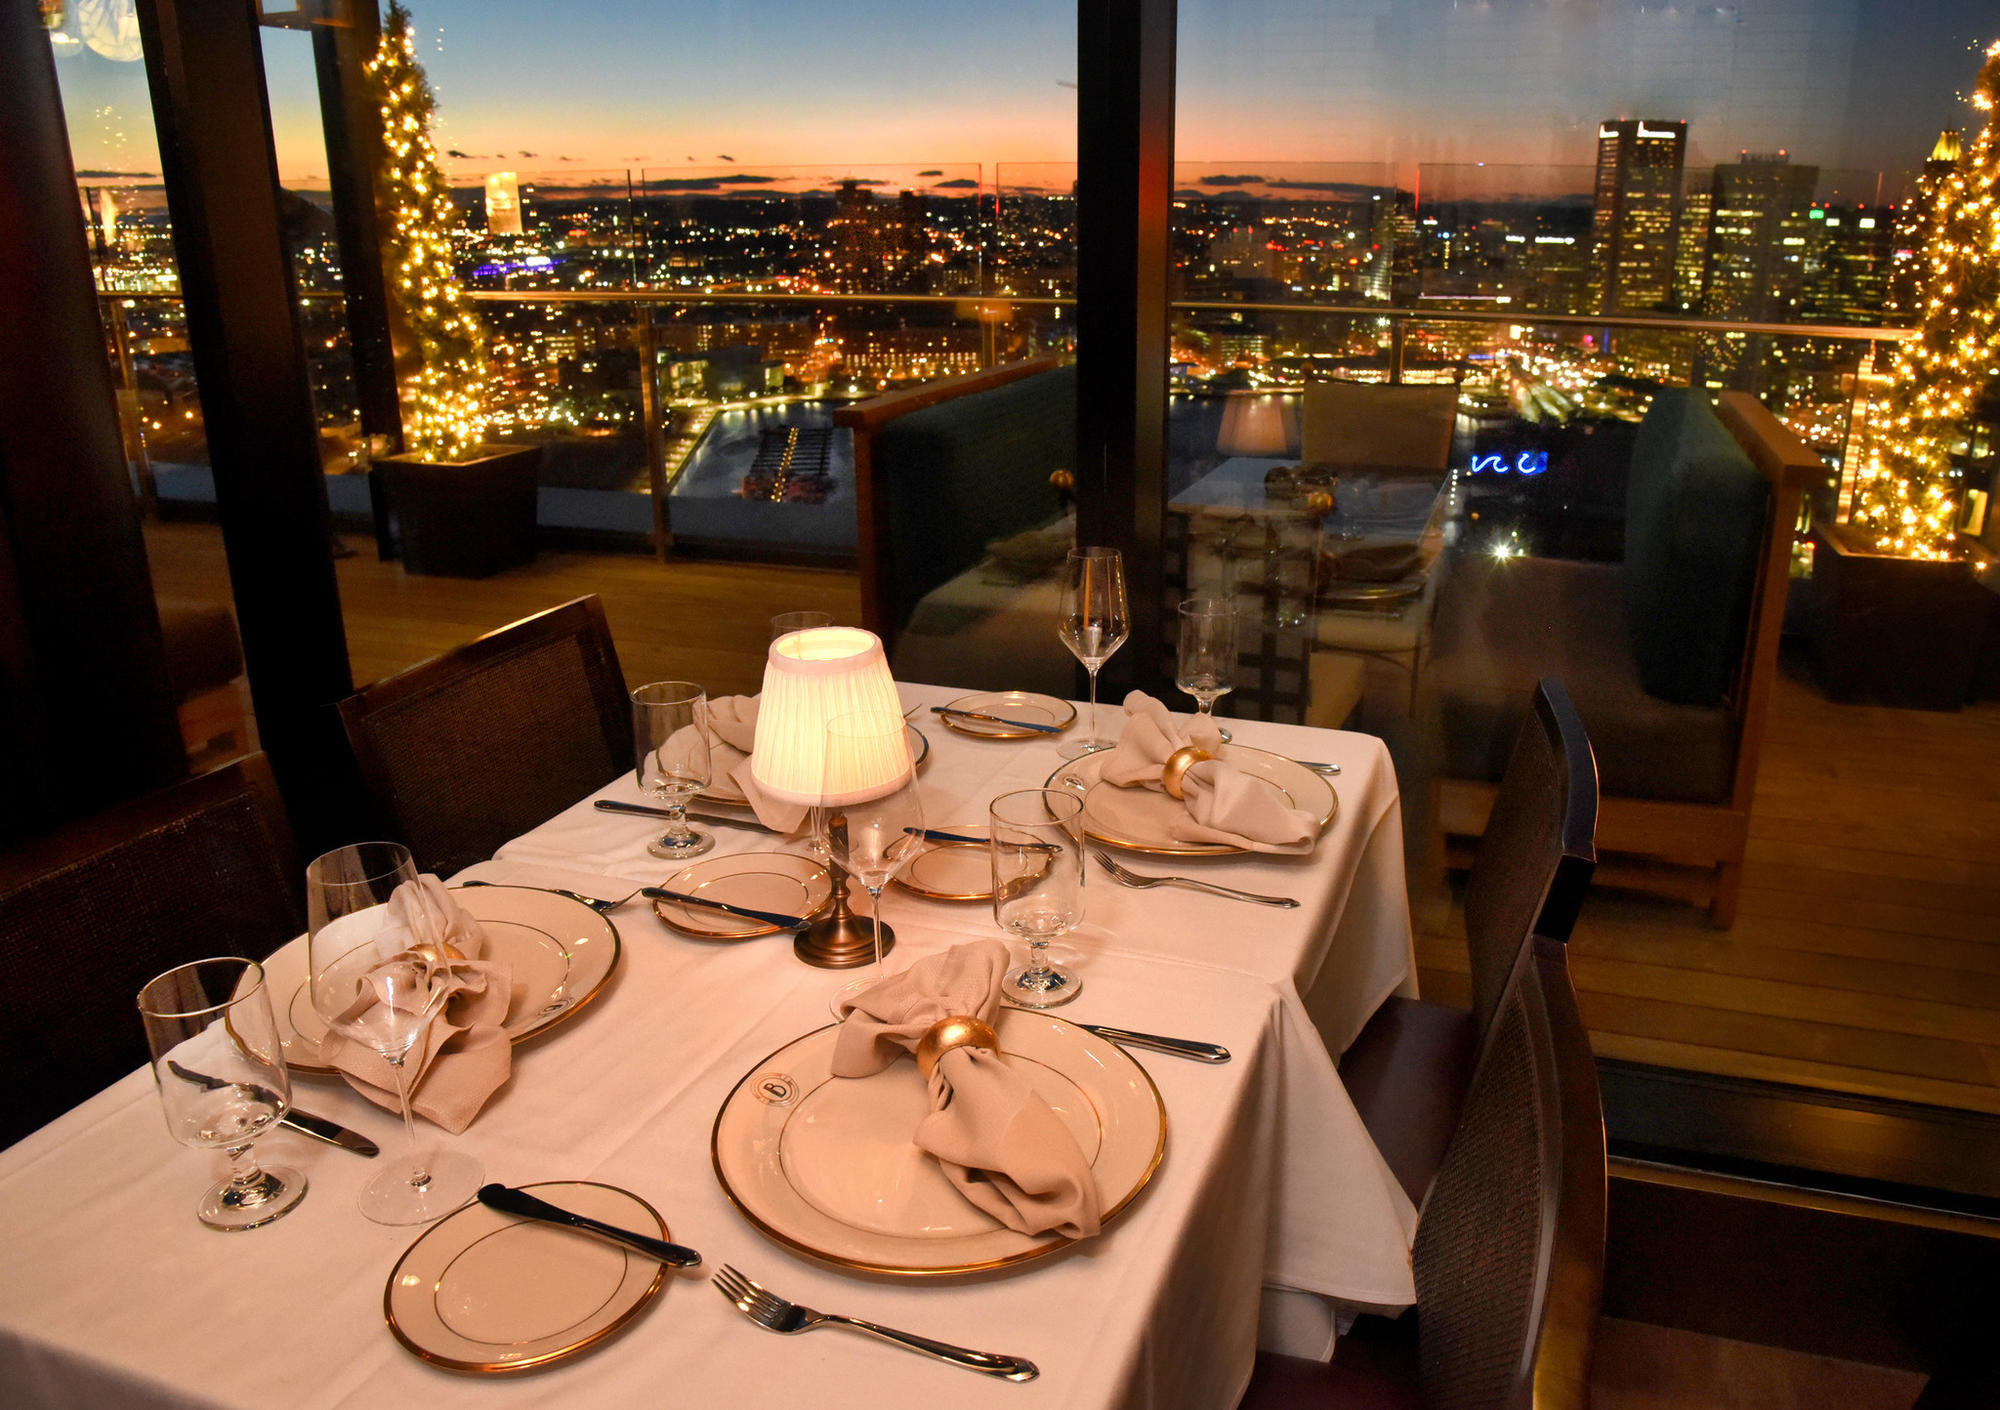 With Stunning Views And Superb Food Bygone Delivers Cl Without The Atude Baltimore Sun